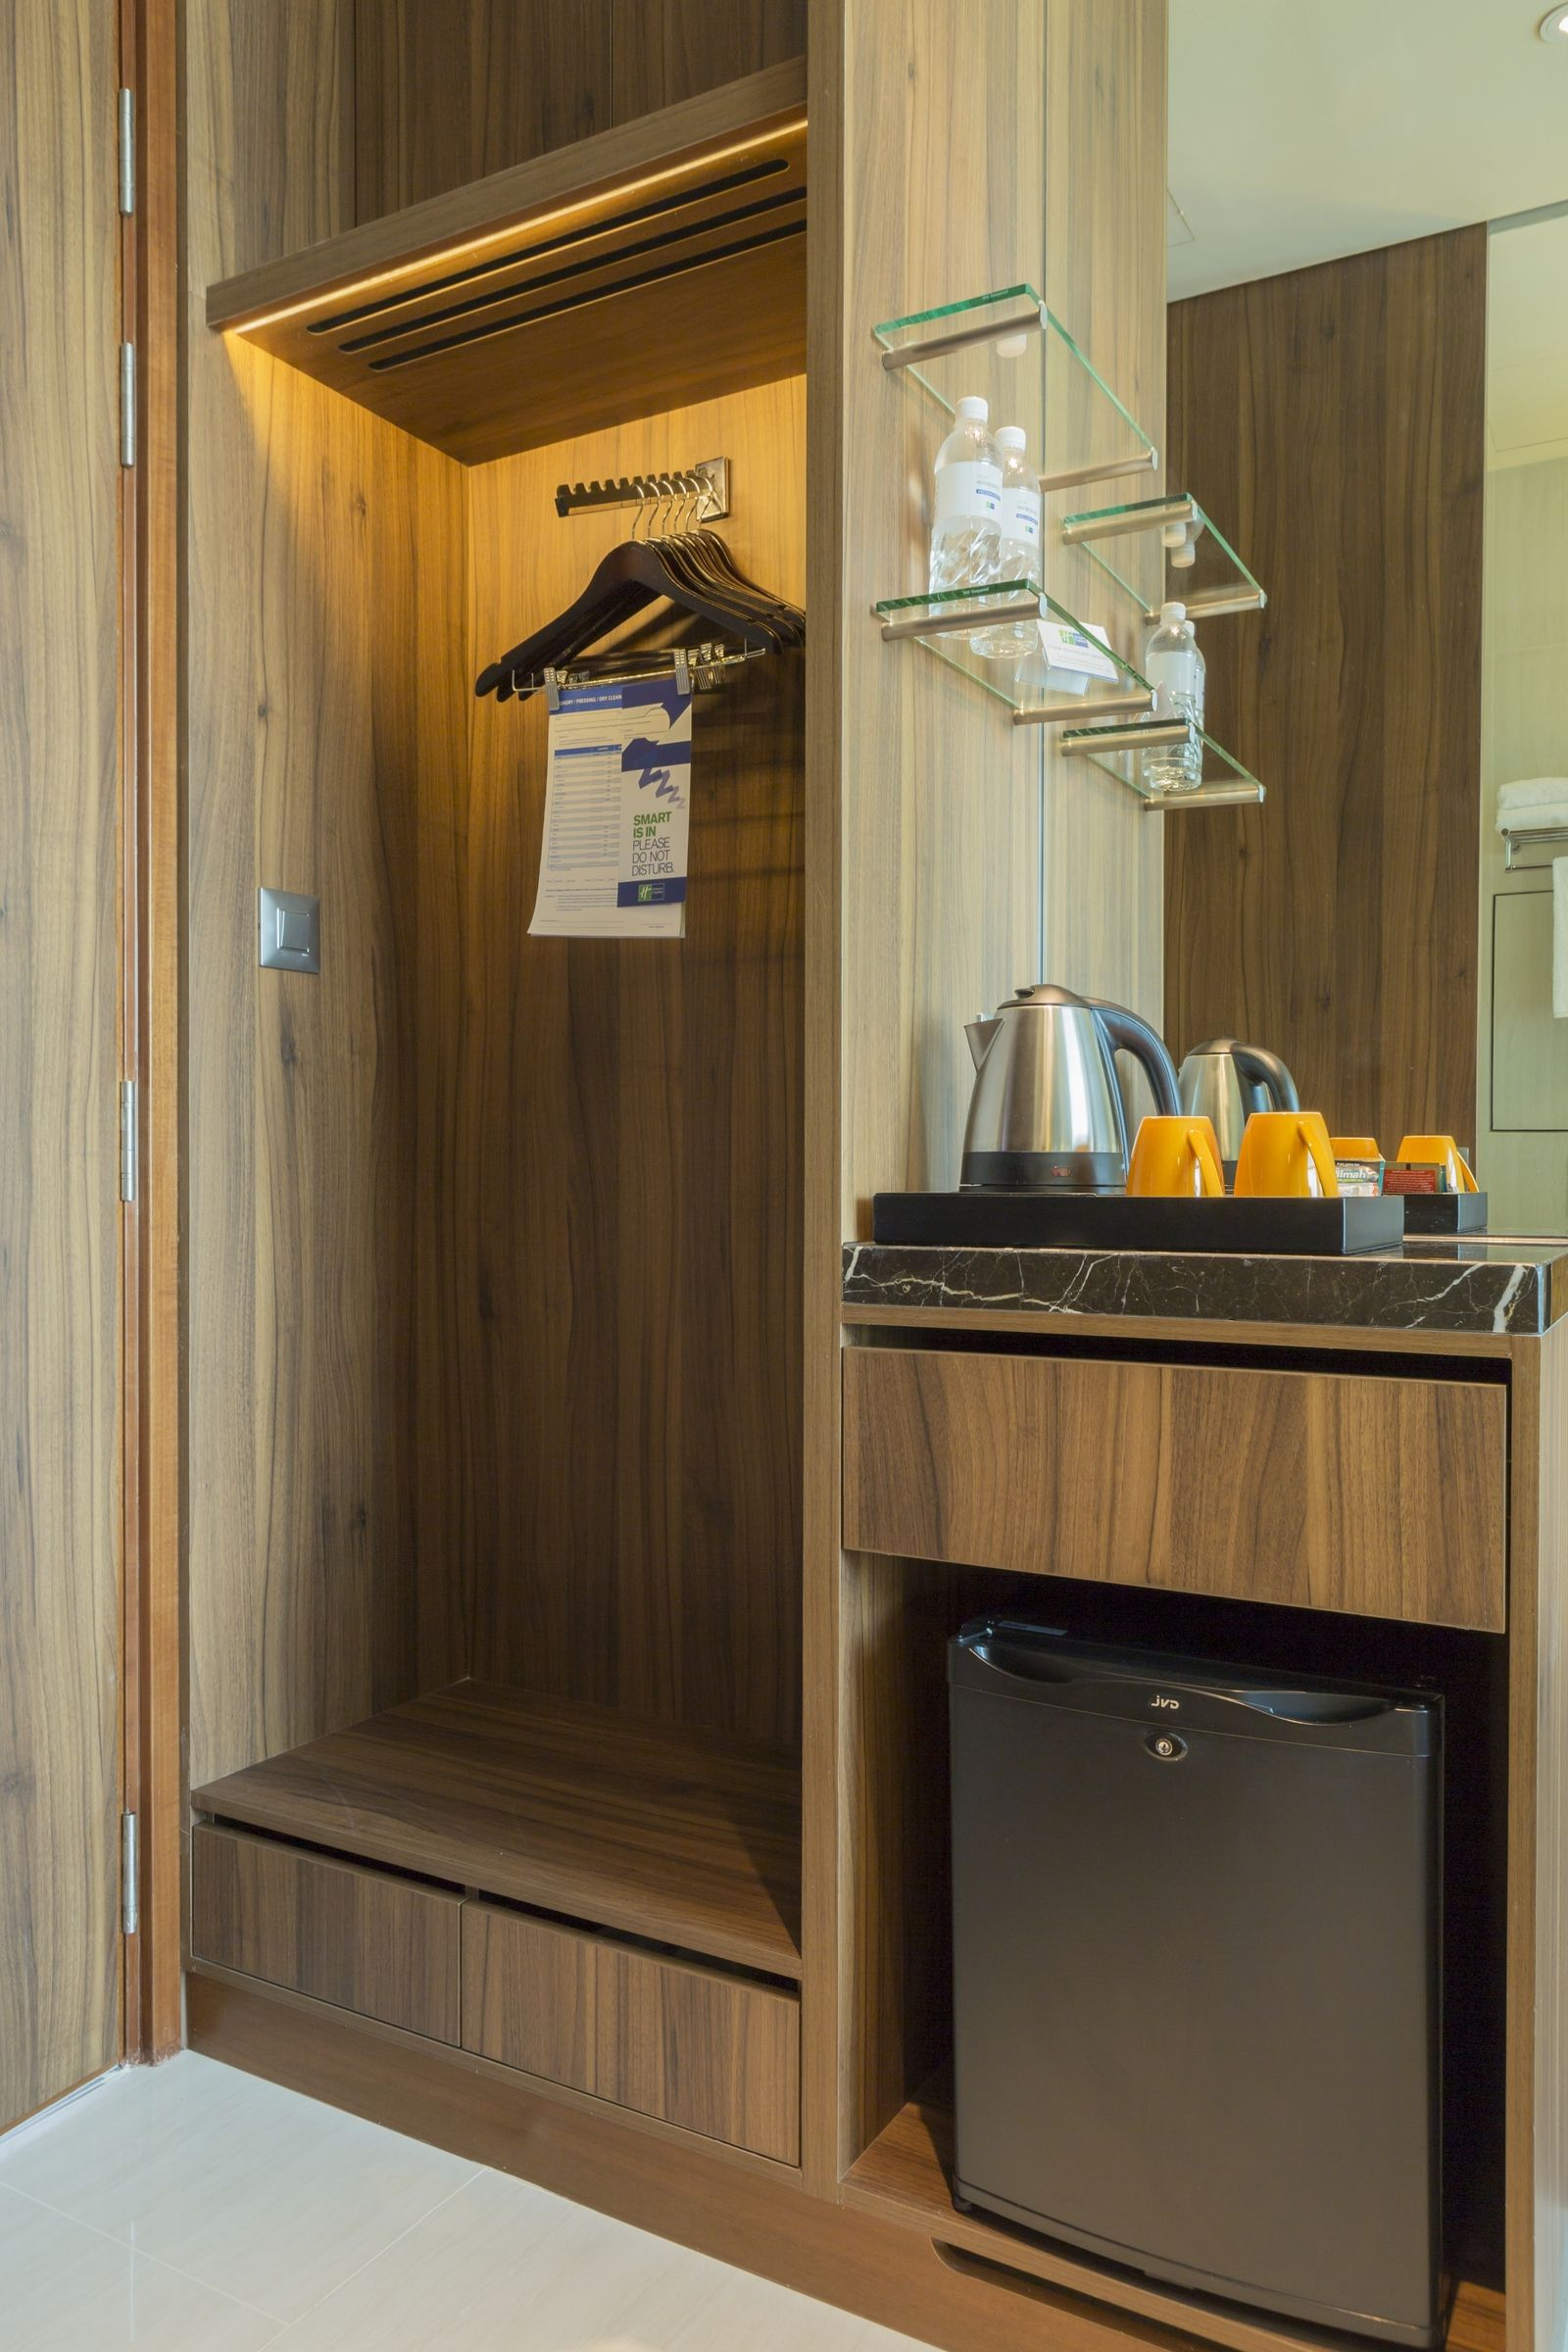 Hotel Room Design: In Room Closet And Mini-Fridge At Holiday Inn Express